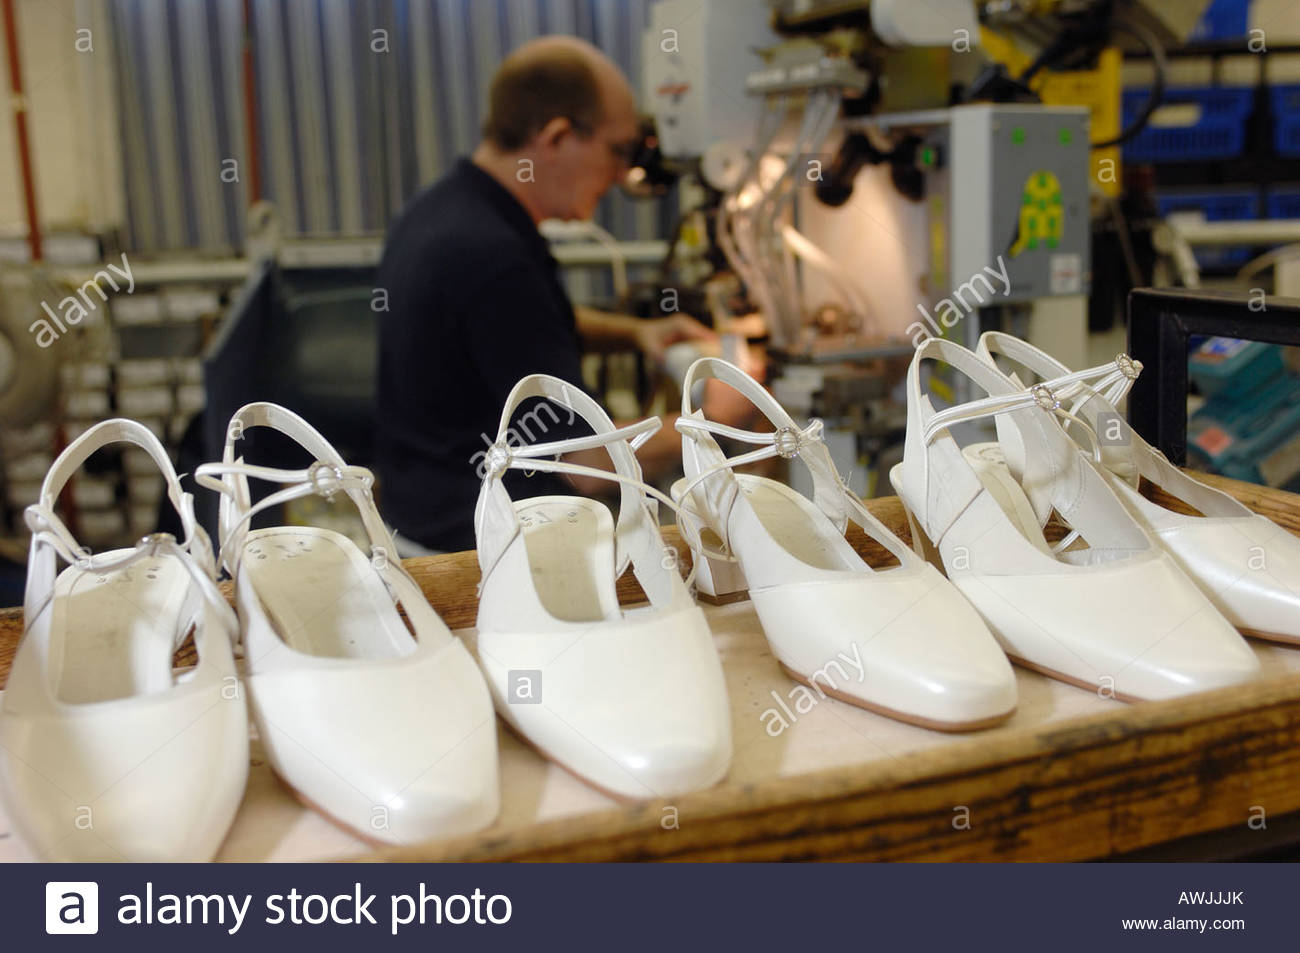 Product Manufacture Stockfotos & Product Manufacture Bilder - Alamy